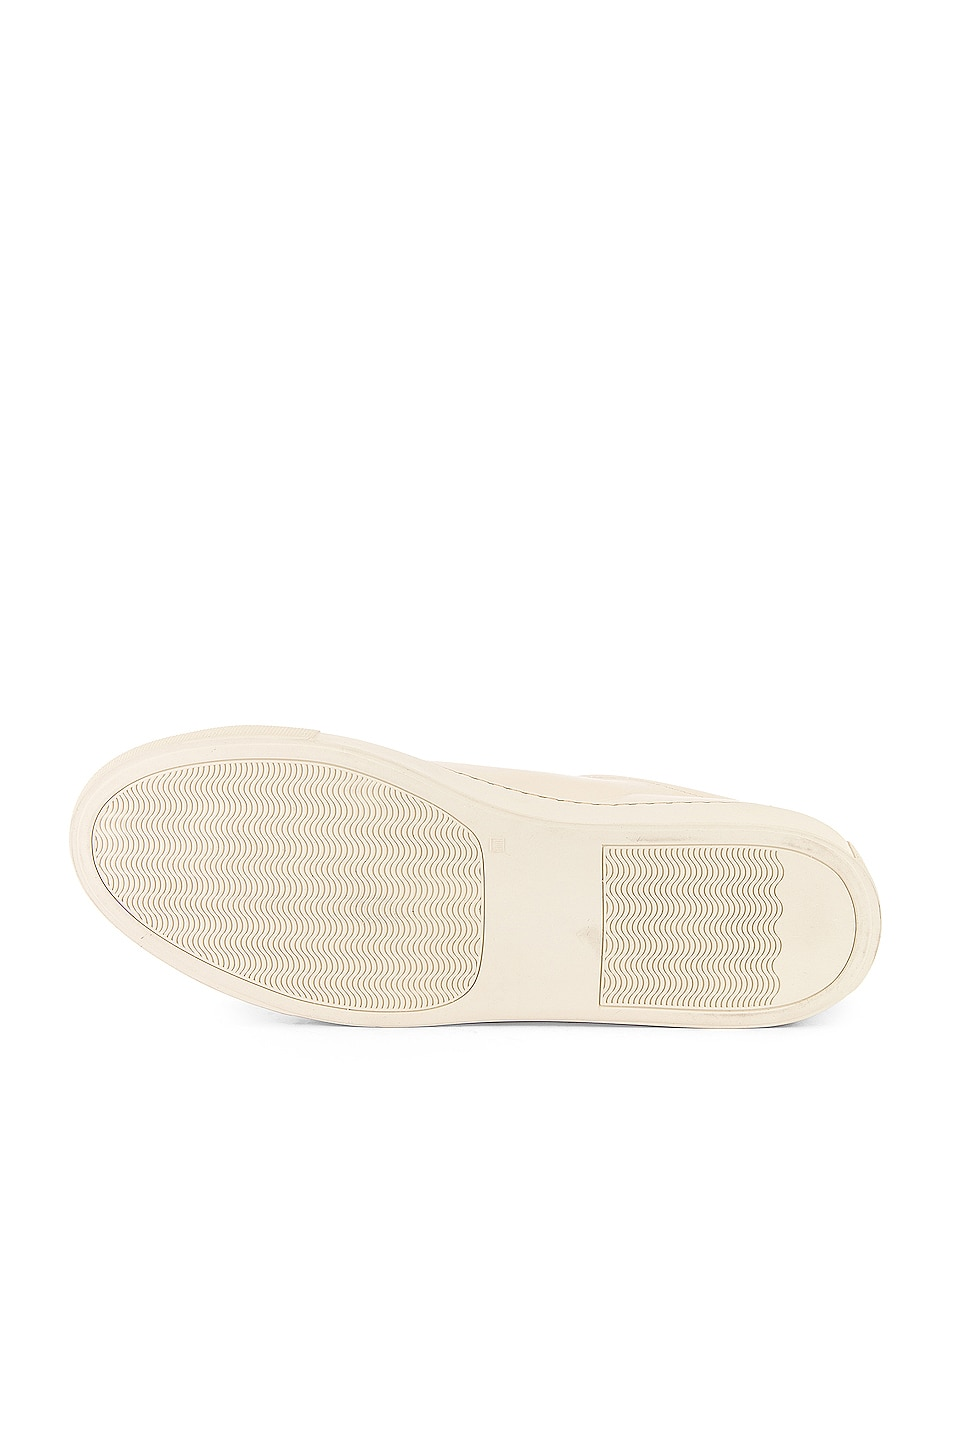 Image 6 of Common Projects Original Achilles Low Low Sneaker in Off White